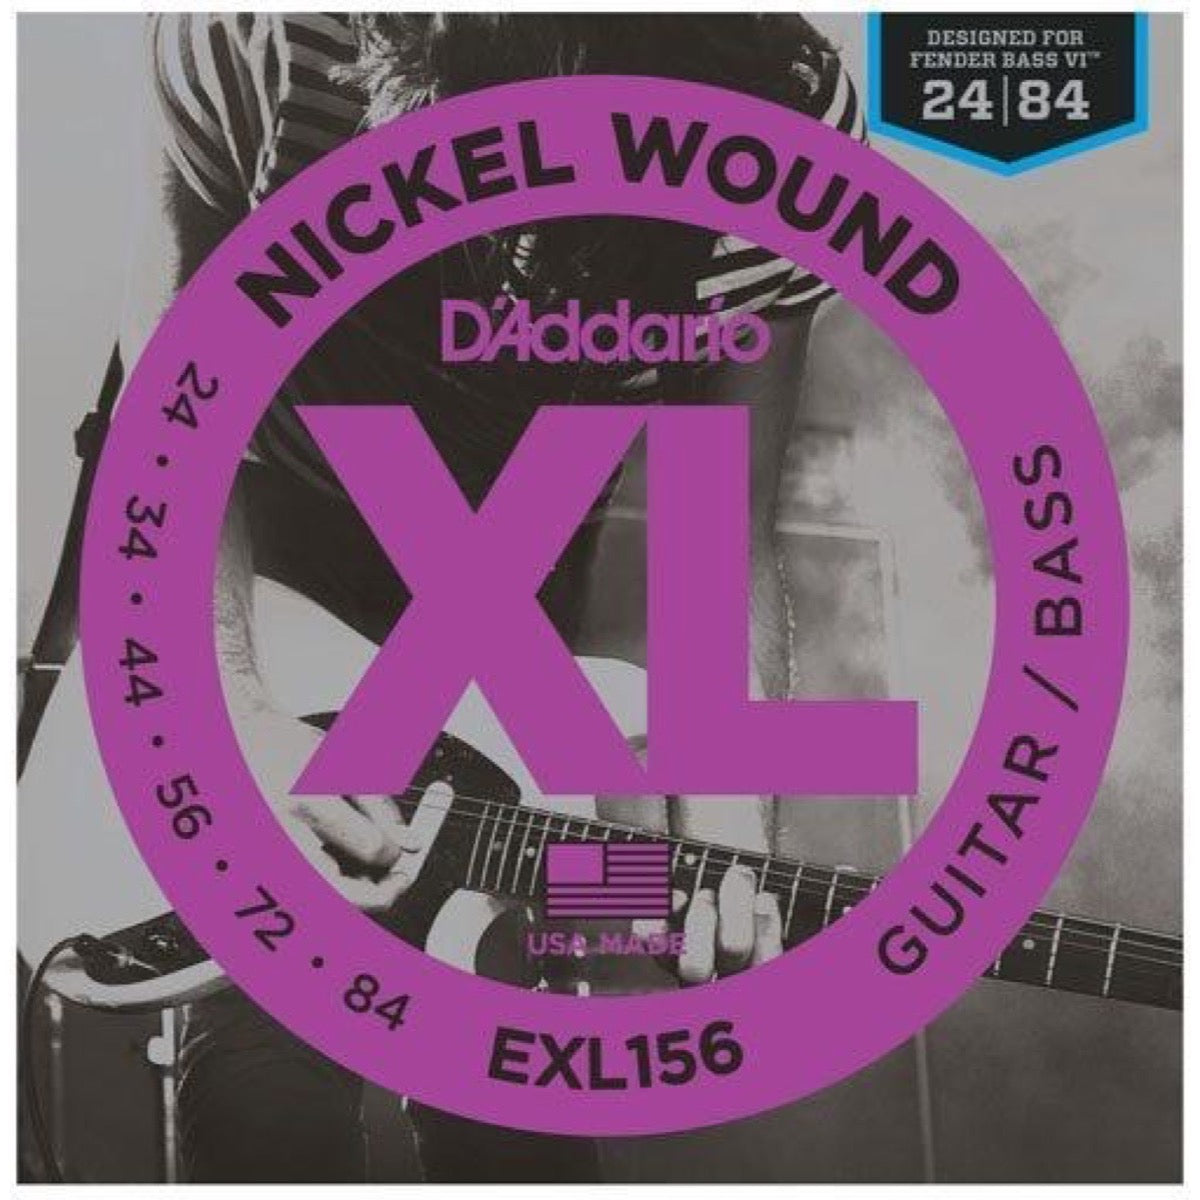 D'Addario EXL156 Nickel Wound Fender Bass VI Strings, EXL156, 24-84